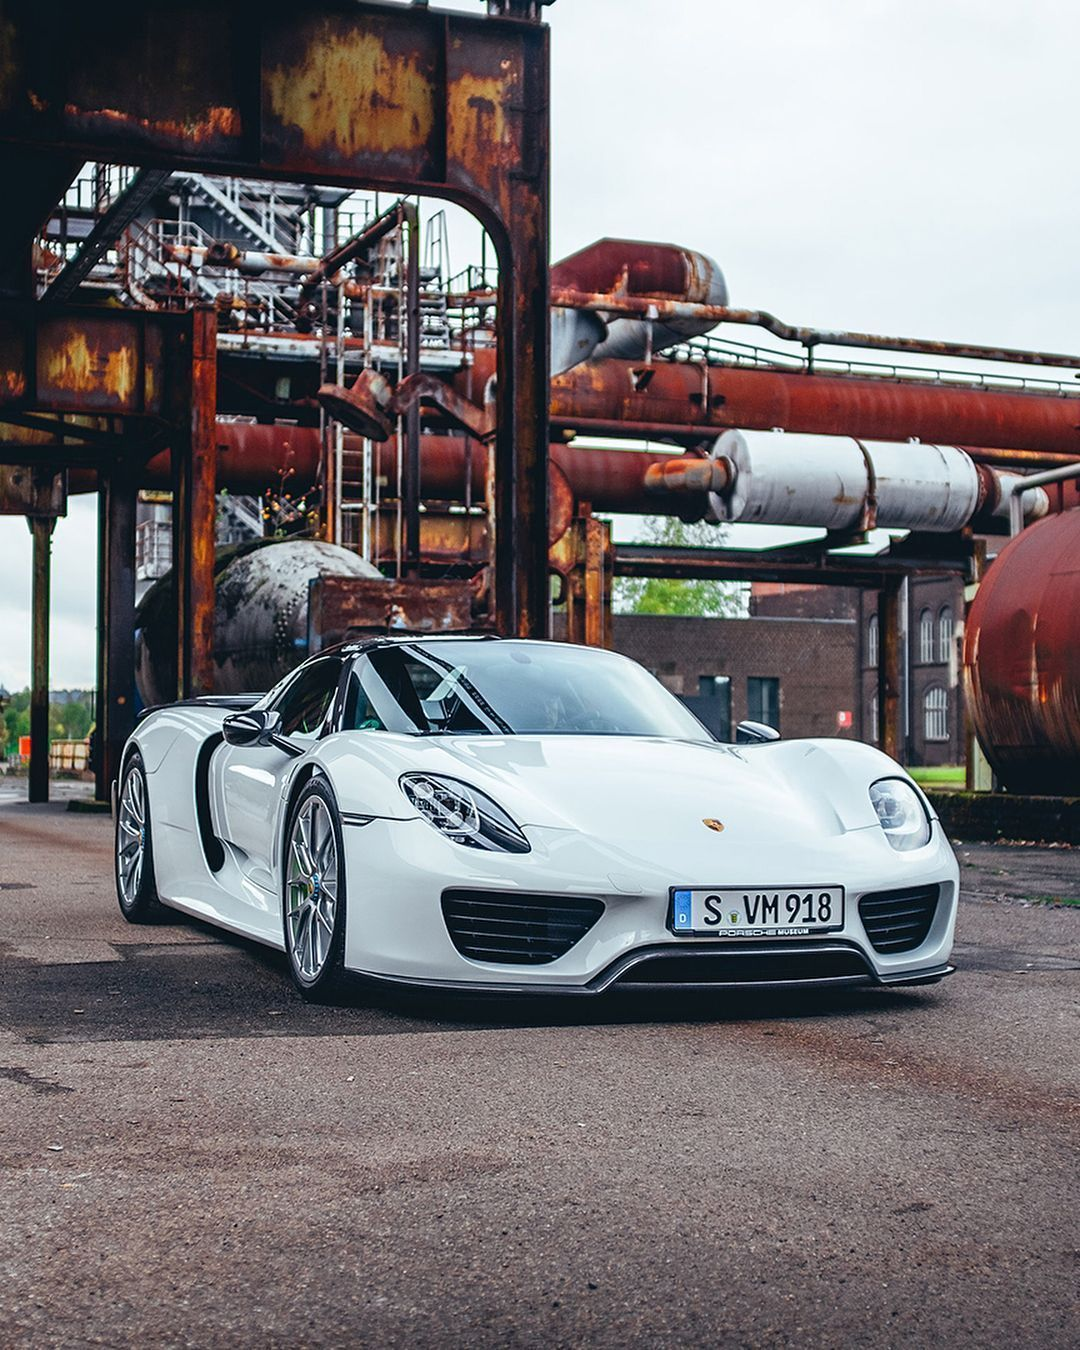 The Phenomenal Porsche 918 Spyder | Cars, Luxury cars and Hot cars